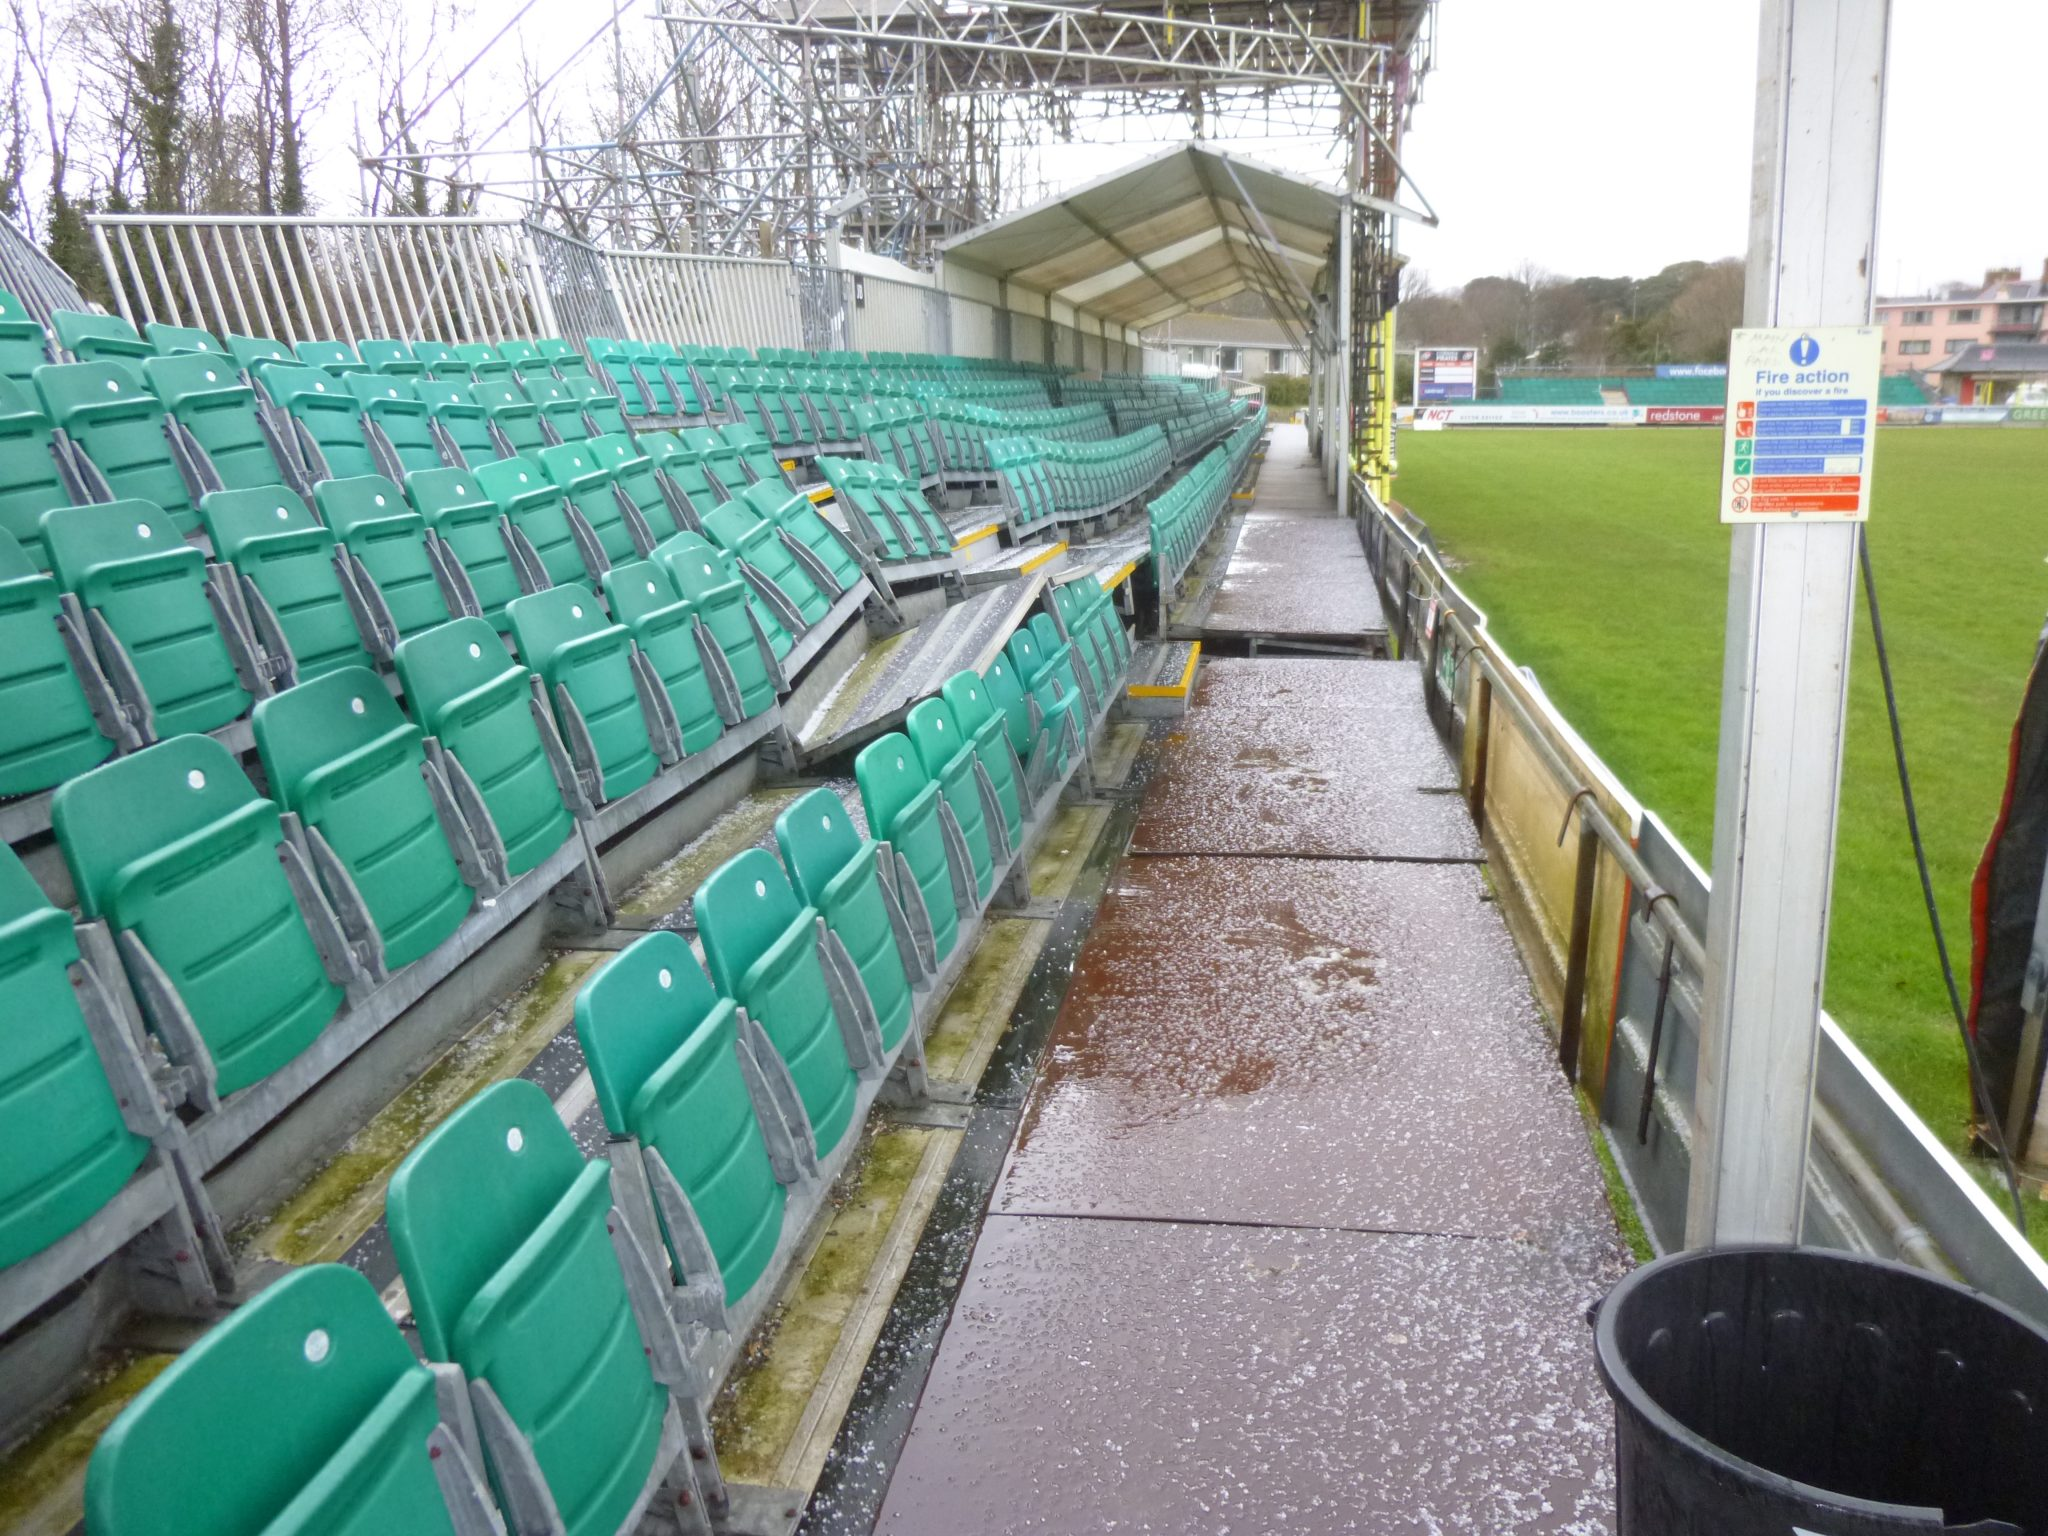 Damage to seating